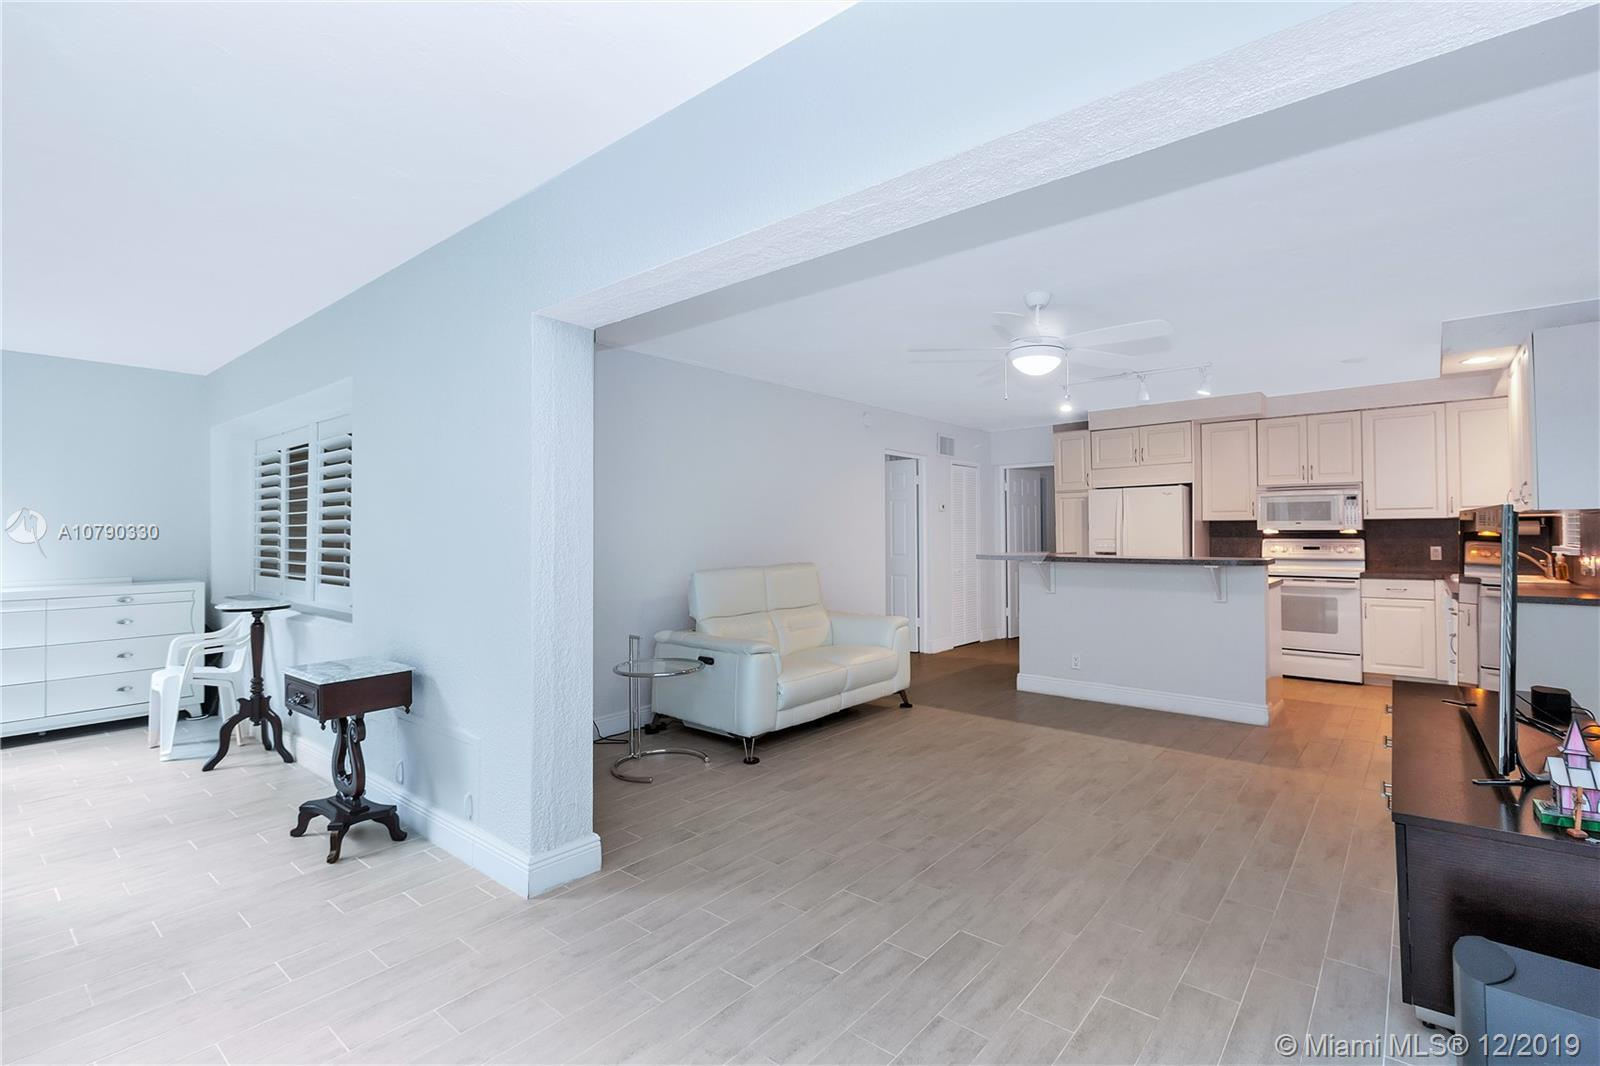 Beautifully remodeled and highly sought after renovated 2 bedroom 2 bath corner unit. Amazing Location! Walk just one block to Las Olas. Enjoy living right on the water, watch the boats and super yachts driving by. Spacious and open floor plan with new flooring. Lots of natural sunlight with a light and airy feel. Renovated bathrooms. Hurricane impact windows and doors all throughout. Peaceful Garden style Complex features a tranquil courtyard with a private pool. Catch the water taxi right next door! Enjoy world class shopping, fine dining , and all that Fort Lauderdale has to offer!